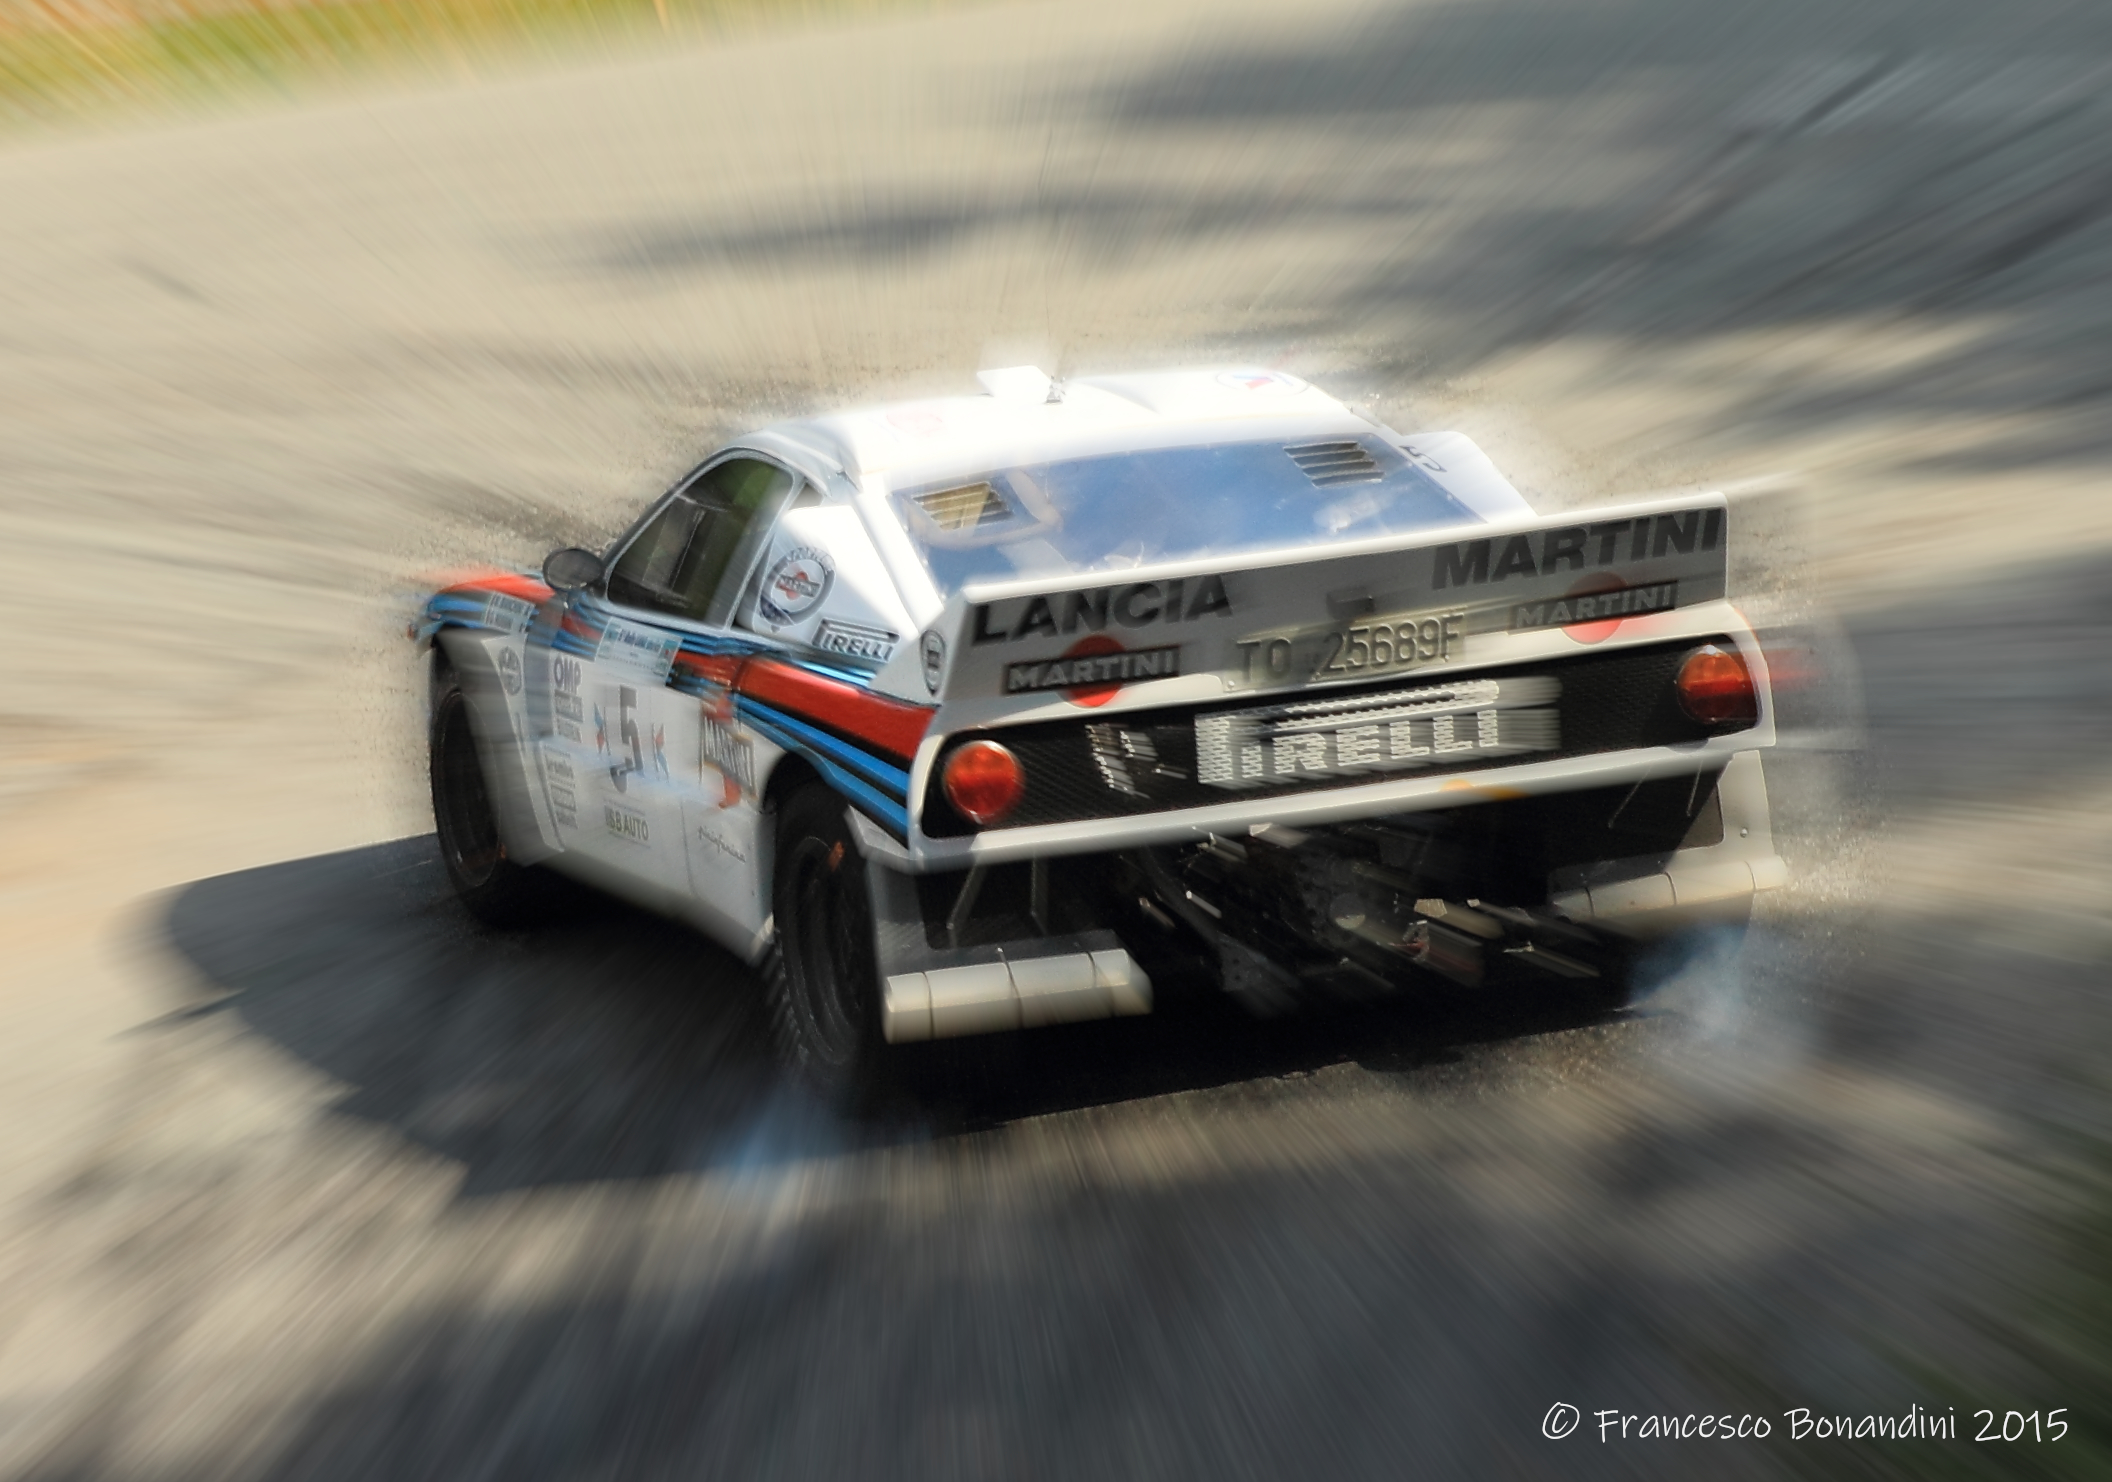 The past that comes back from the Olympus of rallies...